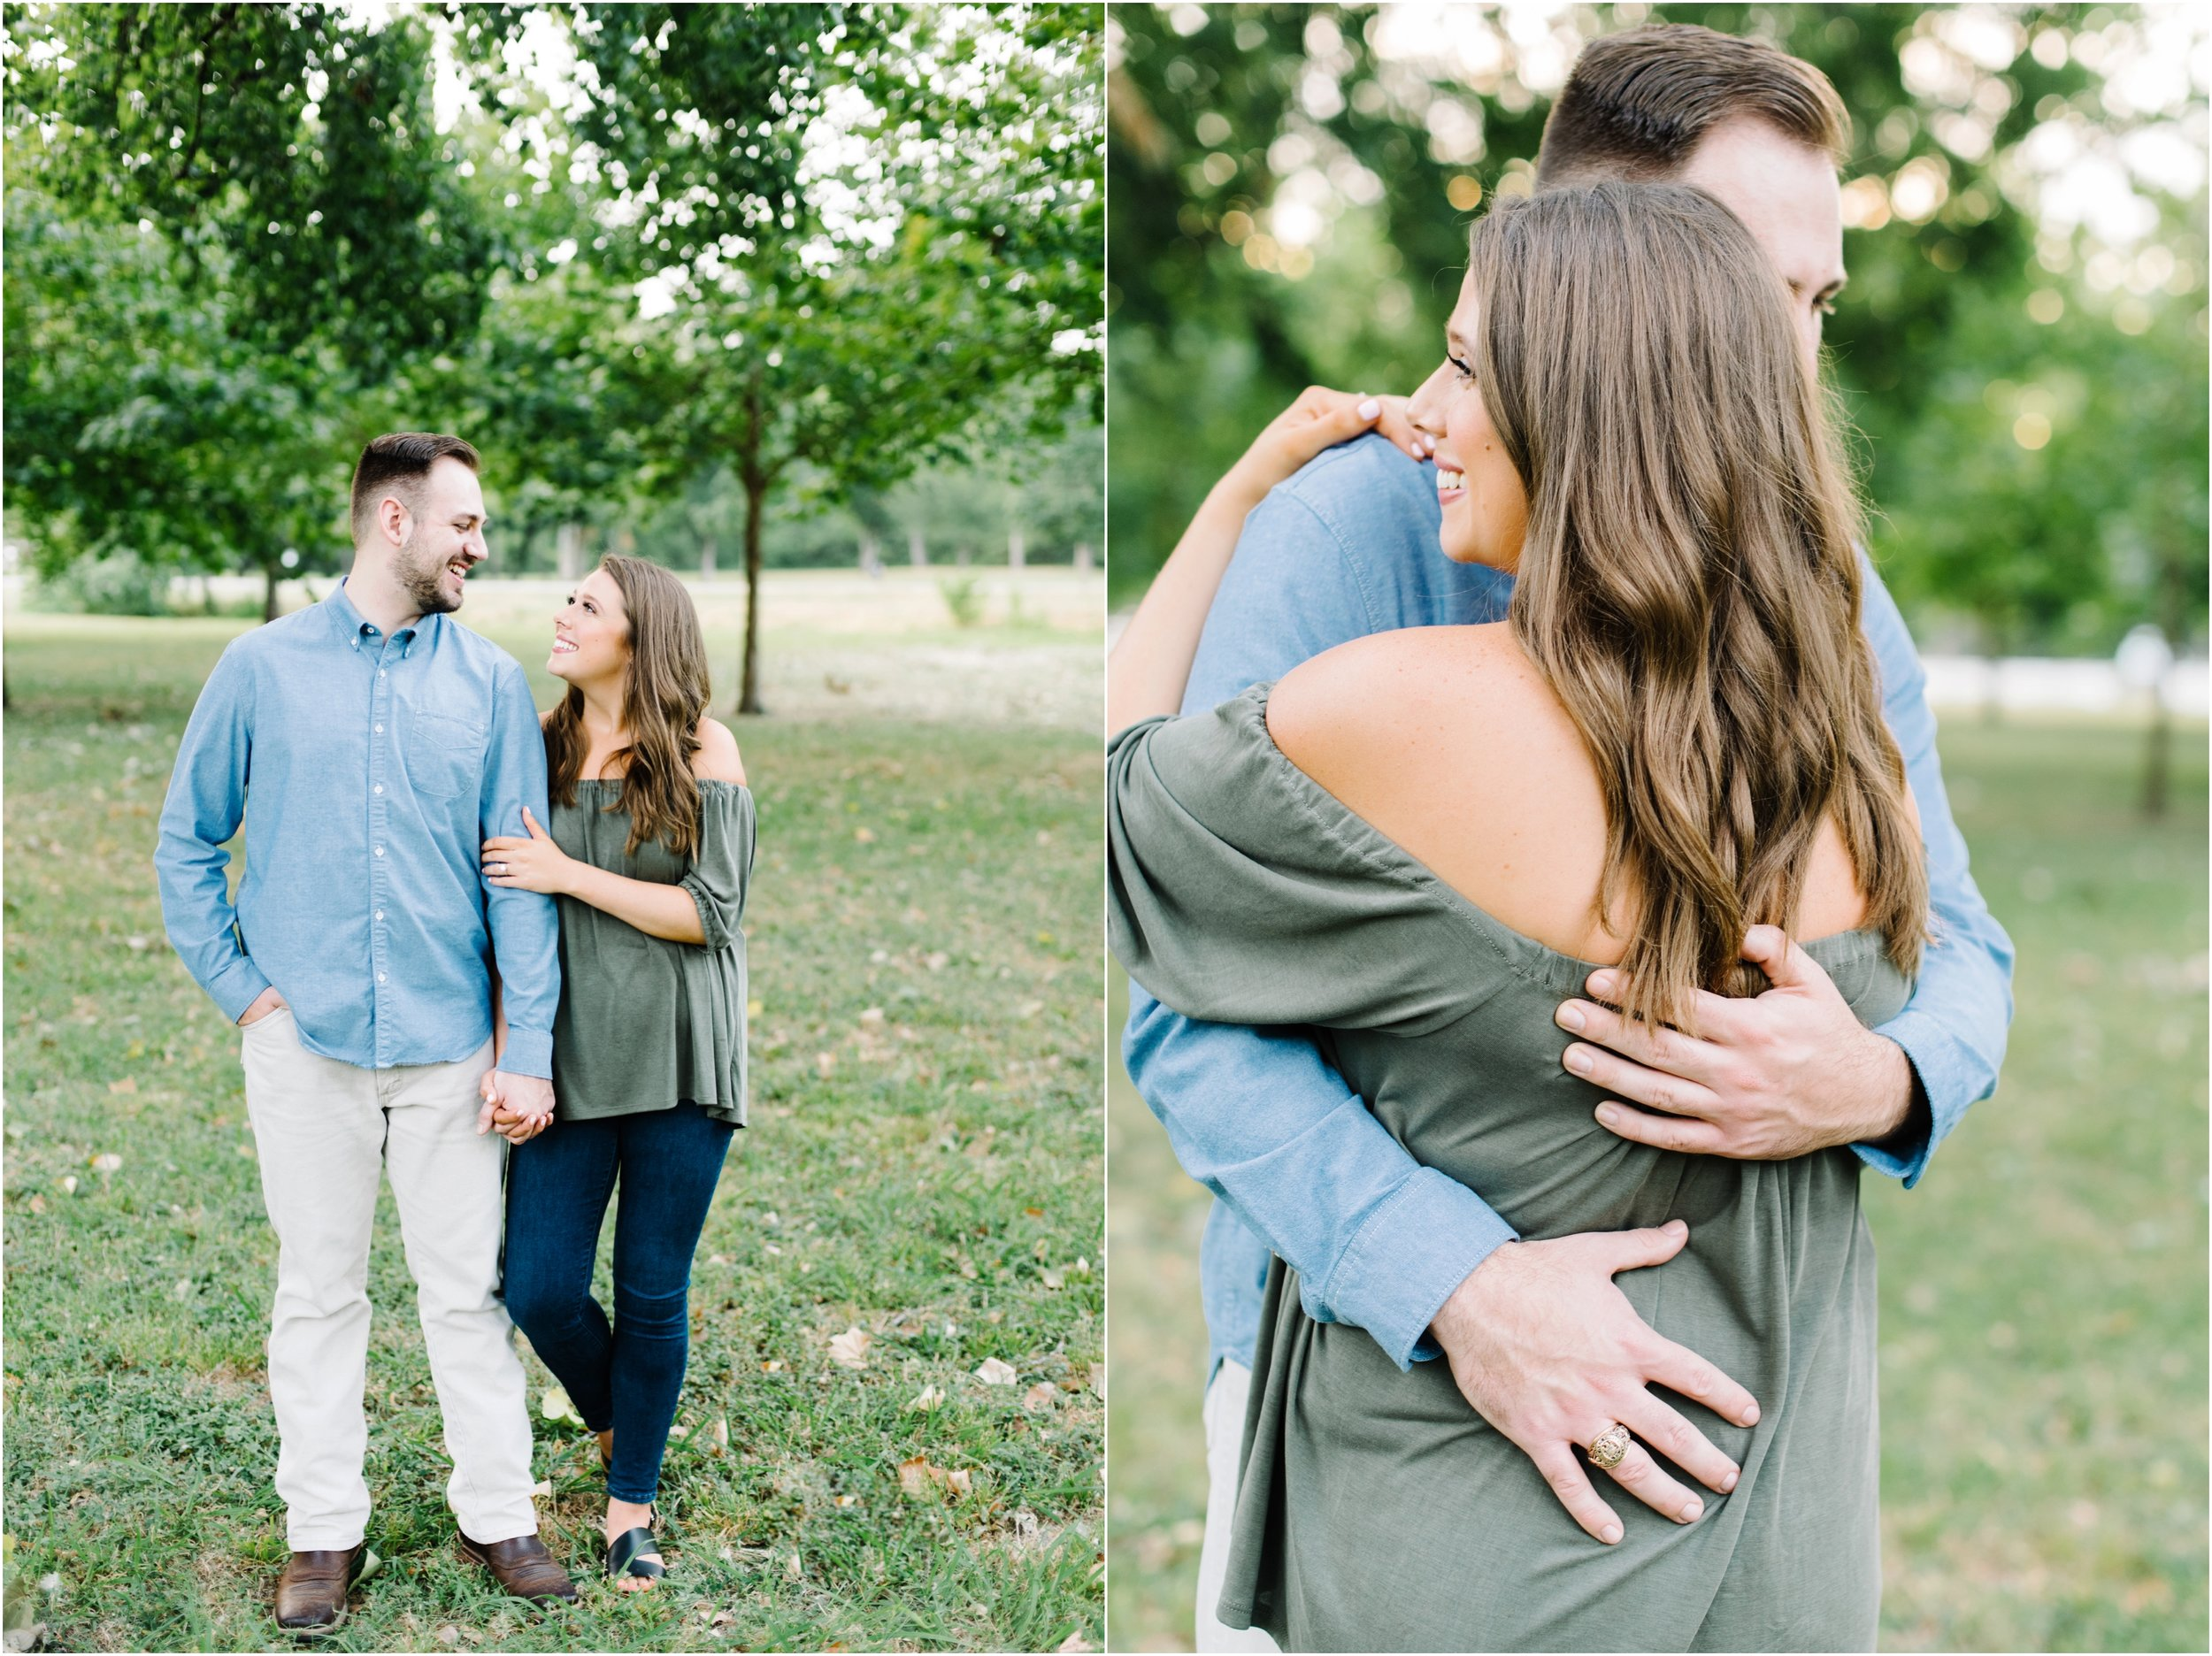 dallasweddingphotographer_texasweddingphotographer_mattandjulieweddings_modernfortworth_fortworthweddingphotographer_0881.jpg